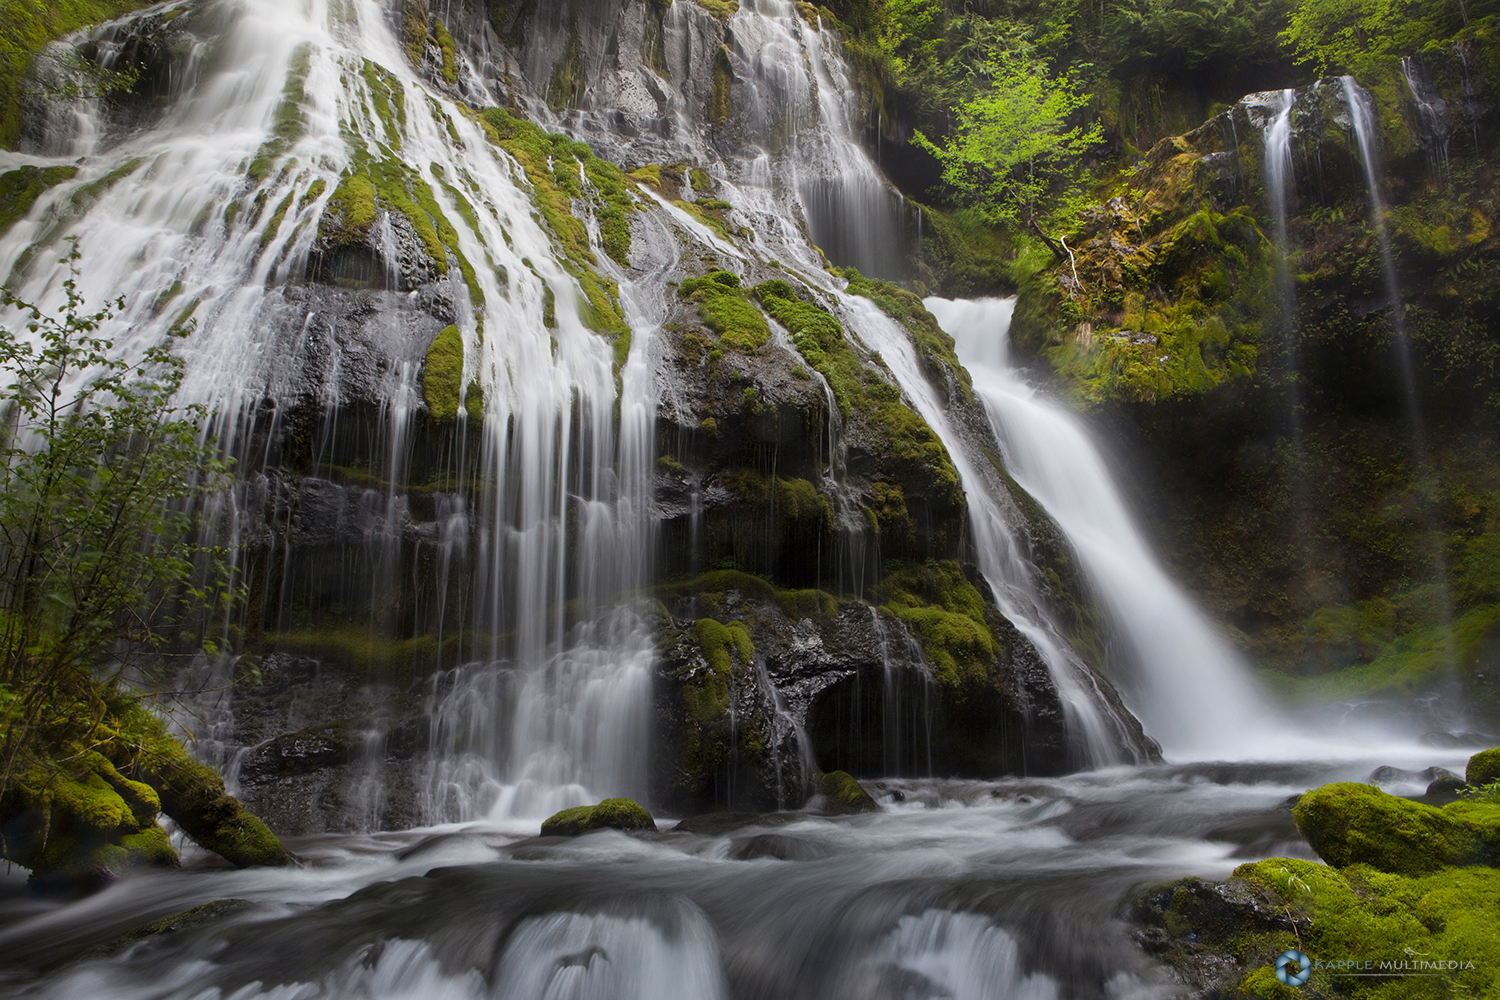 Panther Creek Falls in temperate rainforest, Gifford Pinchot National Forest, Washington